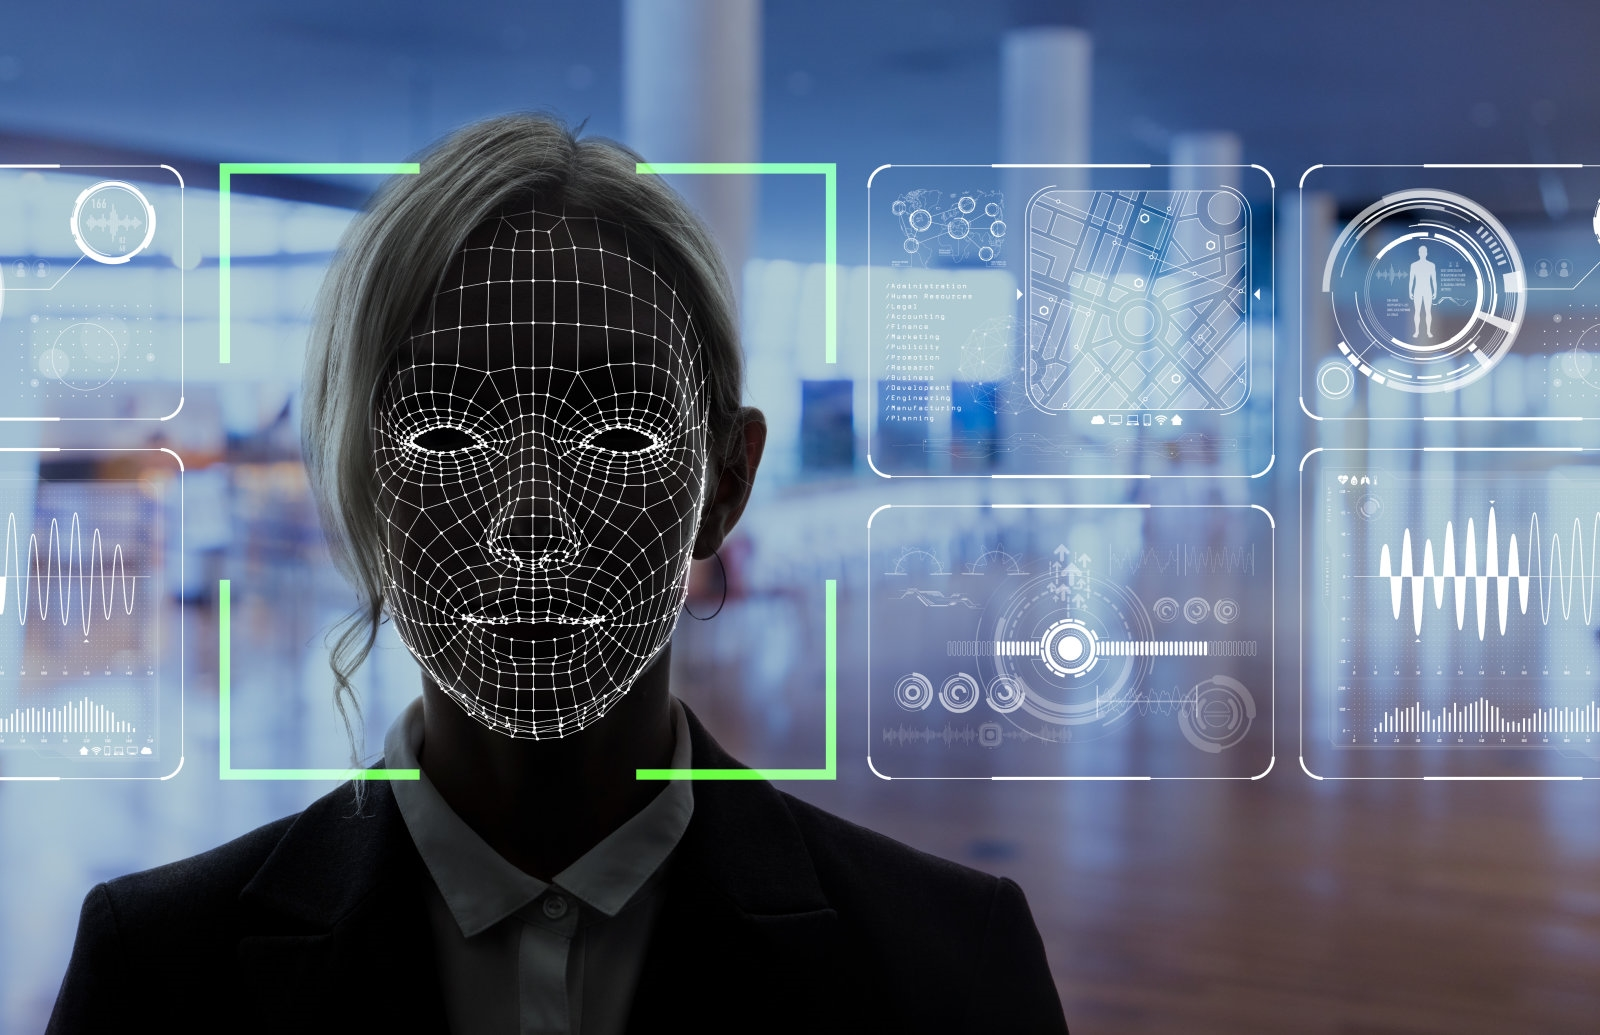 Face Recognition Privacy Act aims to protect your identifying info | DeviceDaily.com